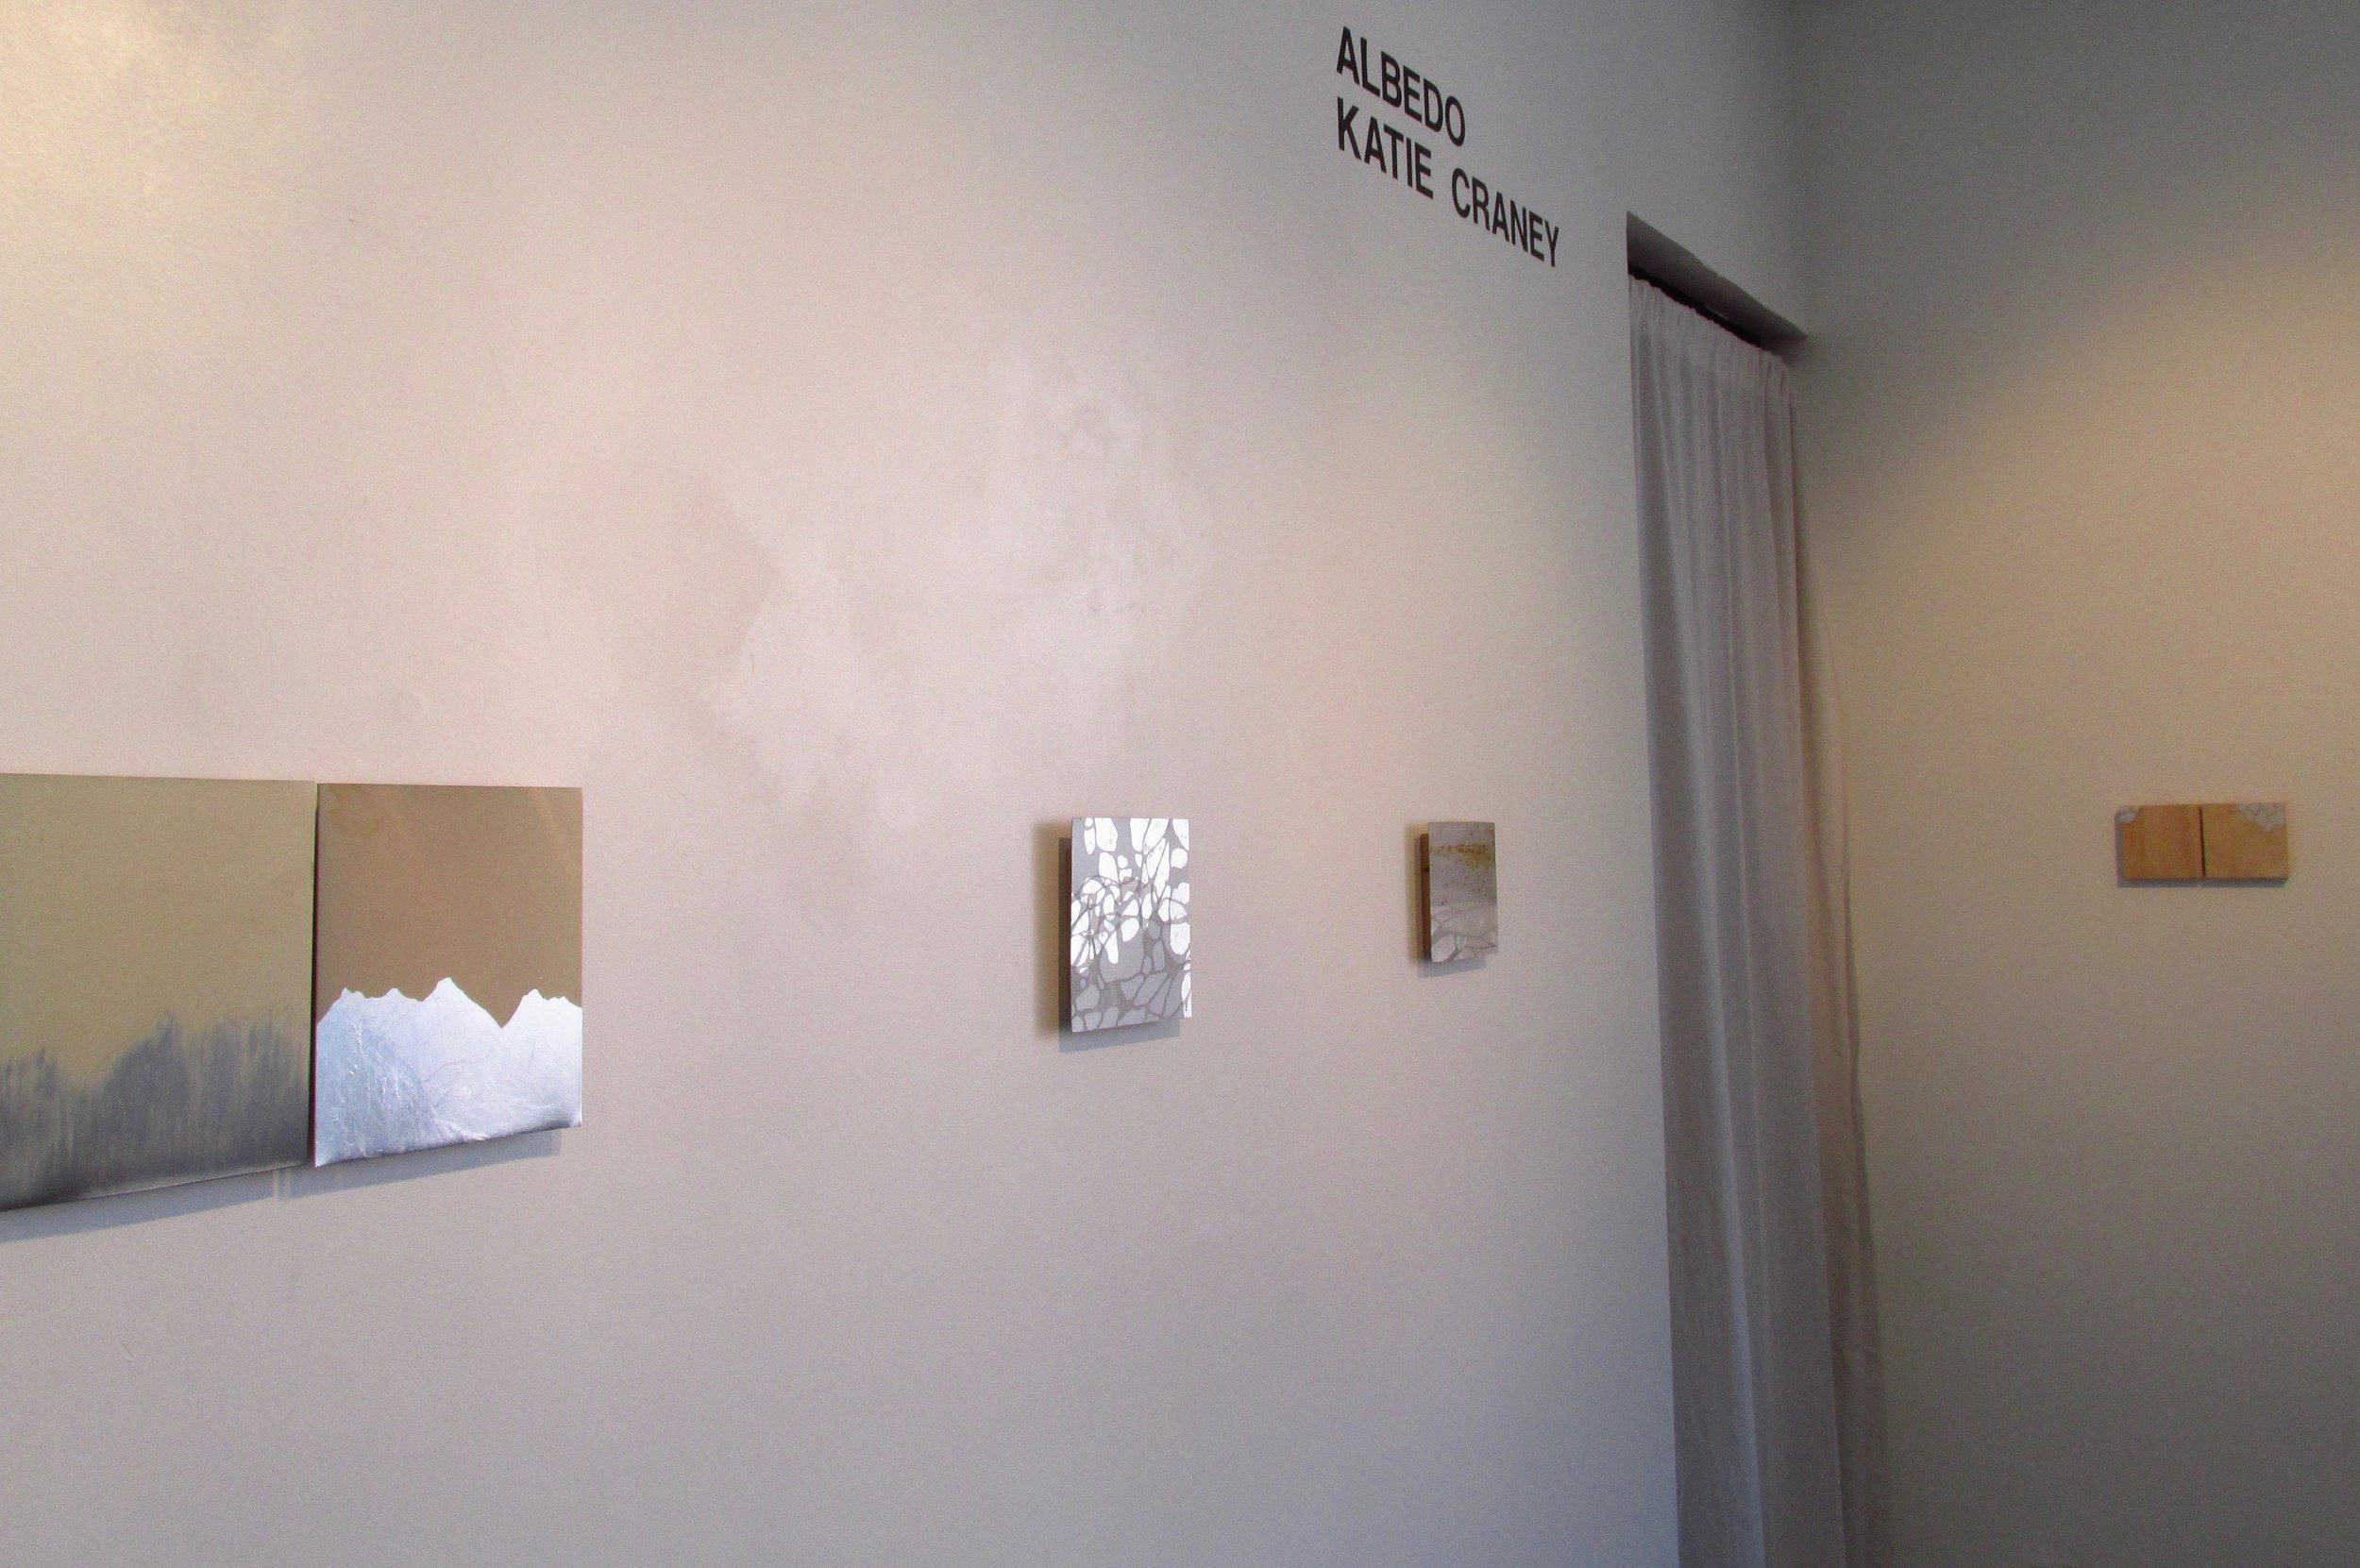 ALBEDO solo exhibition at the  International Gallery of Contemporary Art  in Anchorage, AK, October 2016. This exhibition was supported, in part, by a Career Opportunity Grant from Alaska State Council on the Arts.